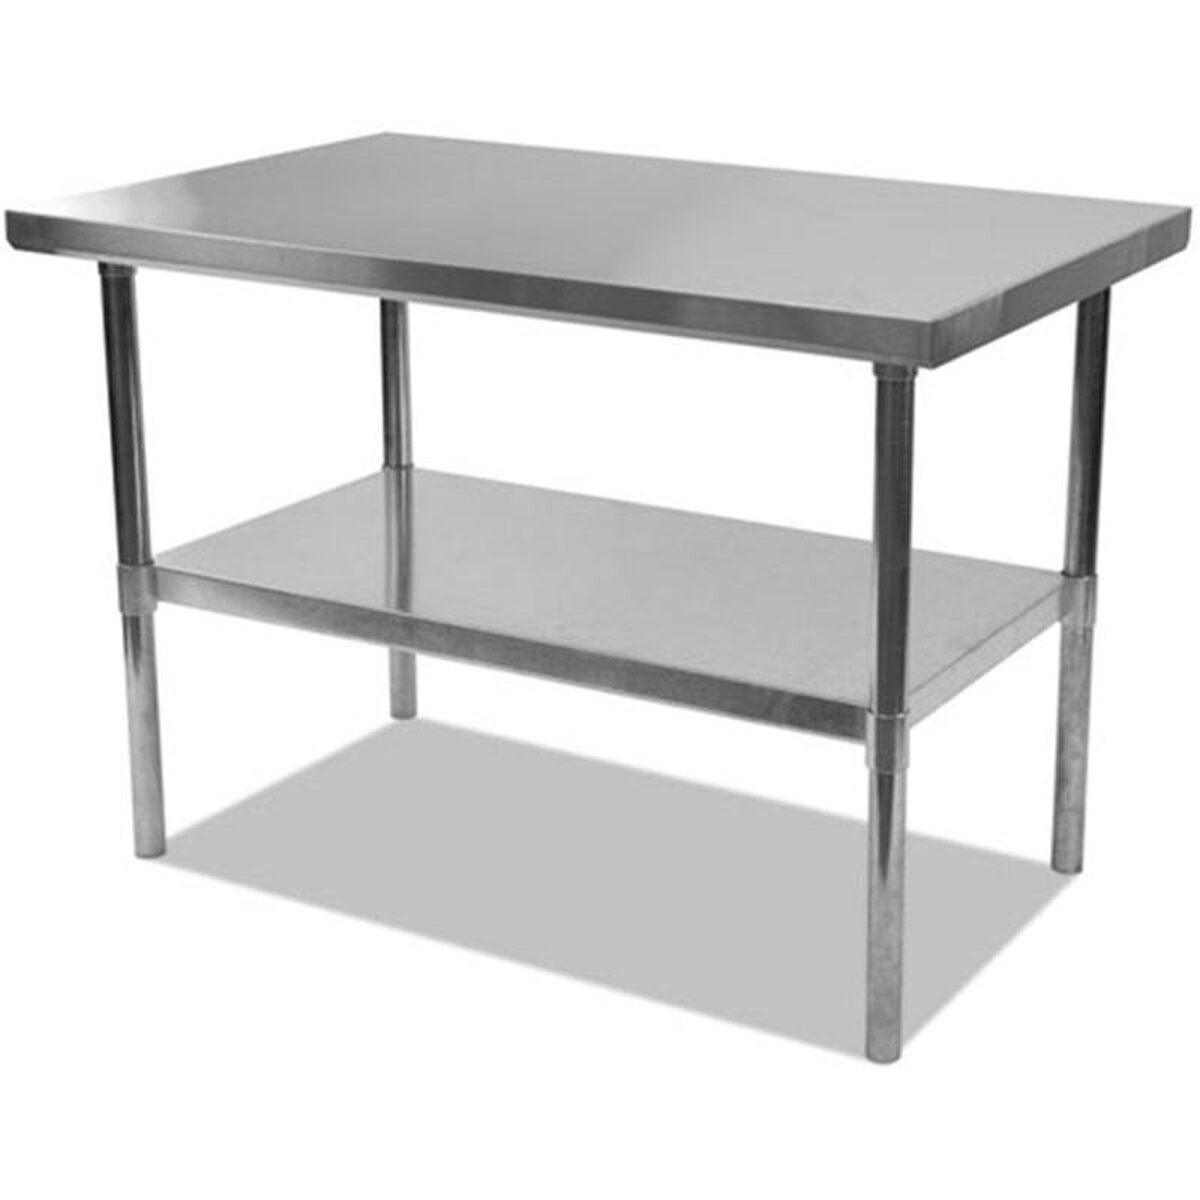 Stainless Steel Table ALEXS Bizchaircom - Stainless steel table with storage